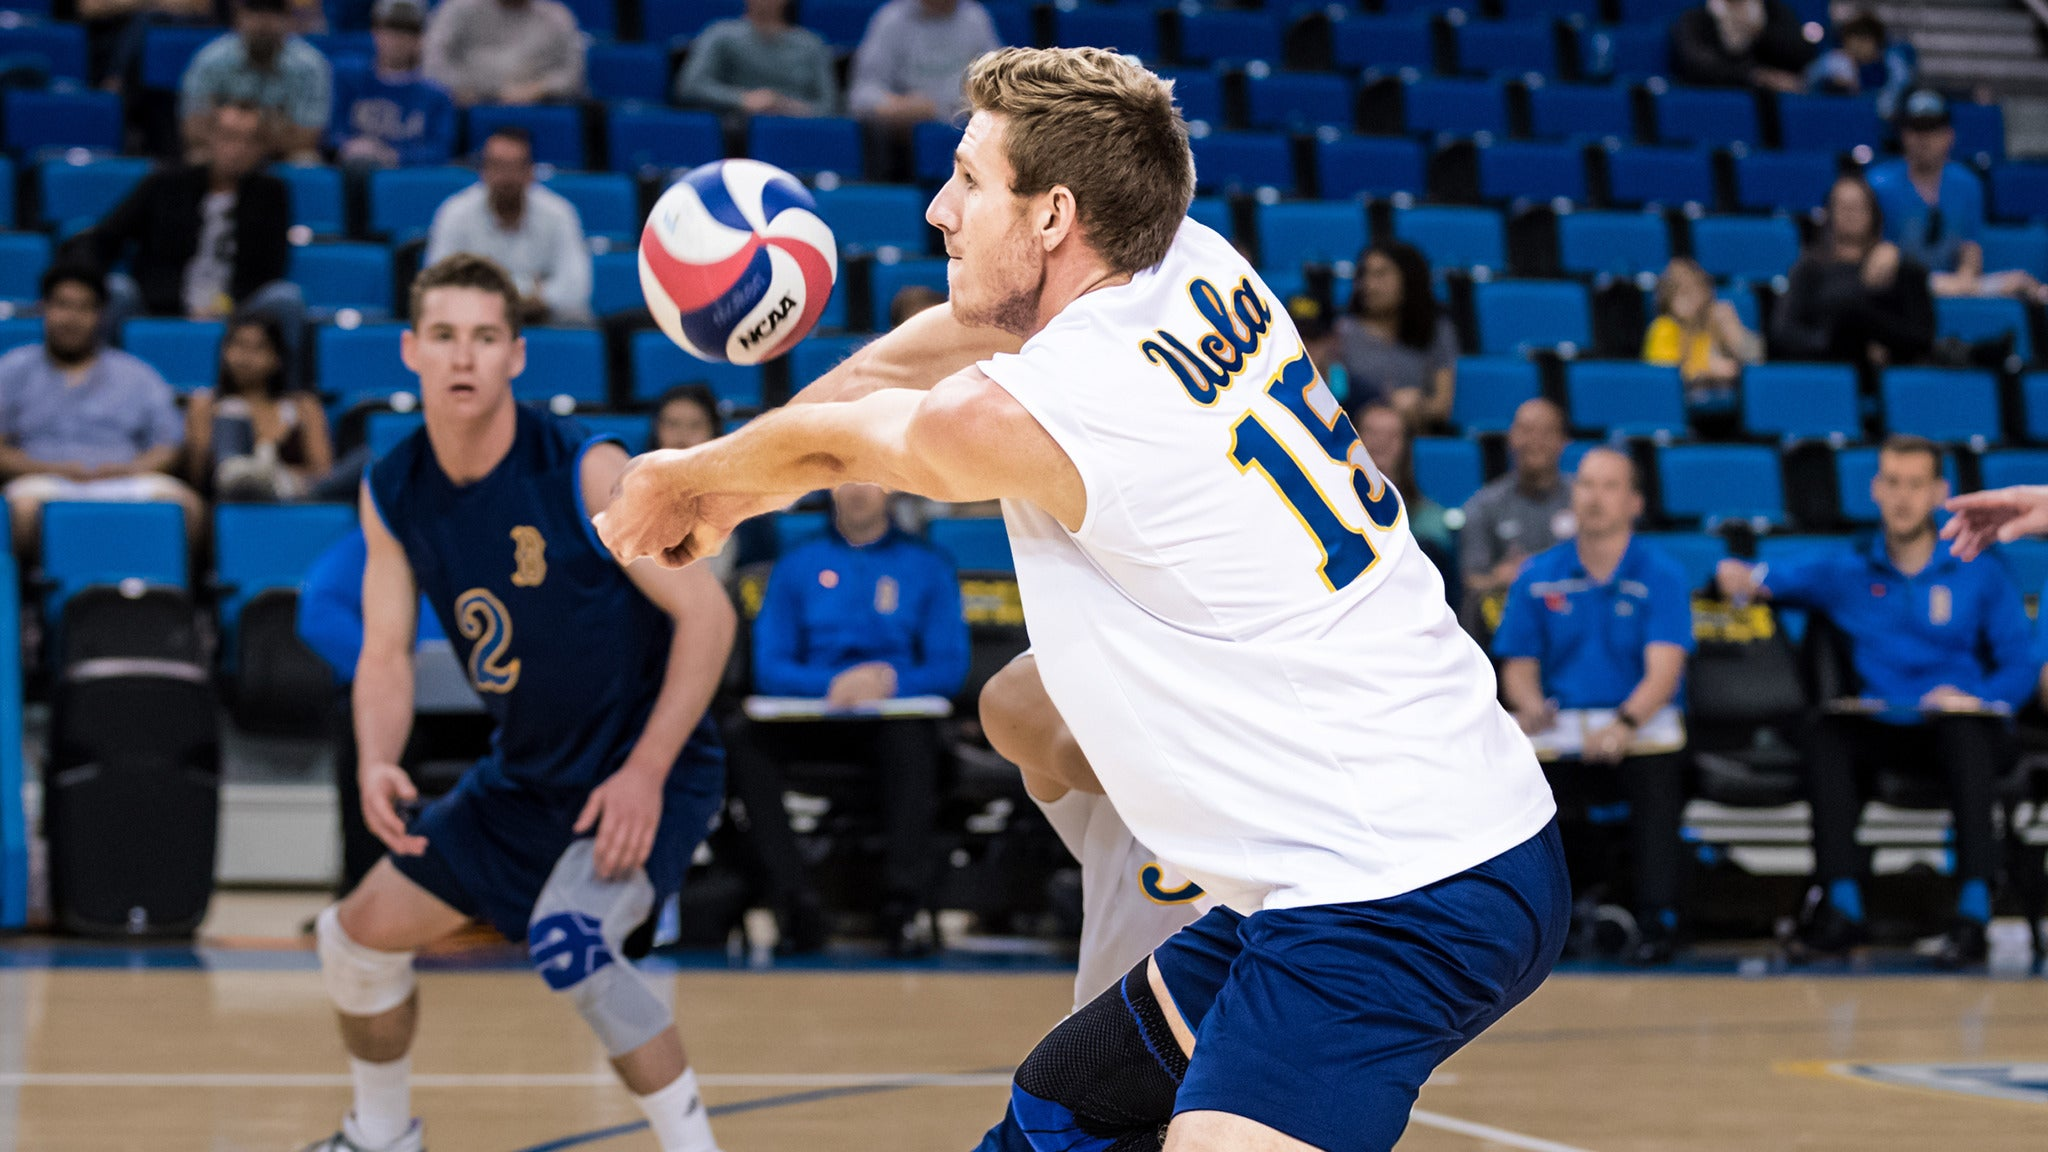 UCLA v Ohio State and USC v Penn State - Men's Volleyball